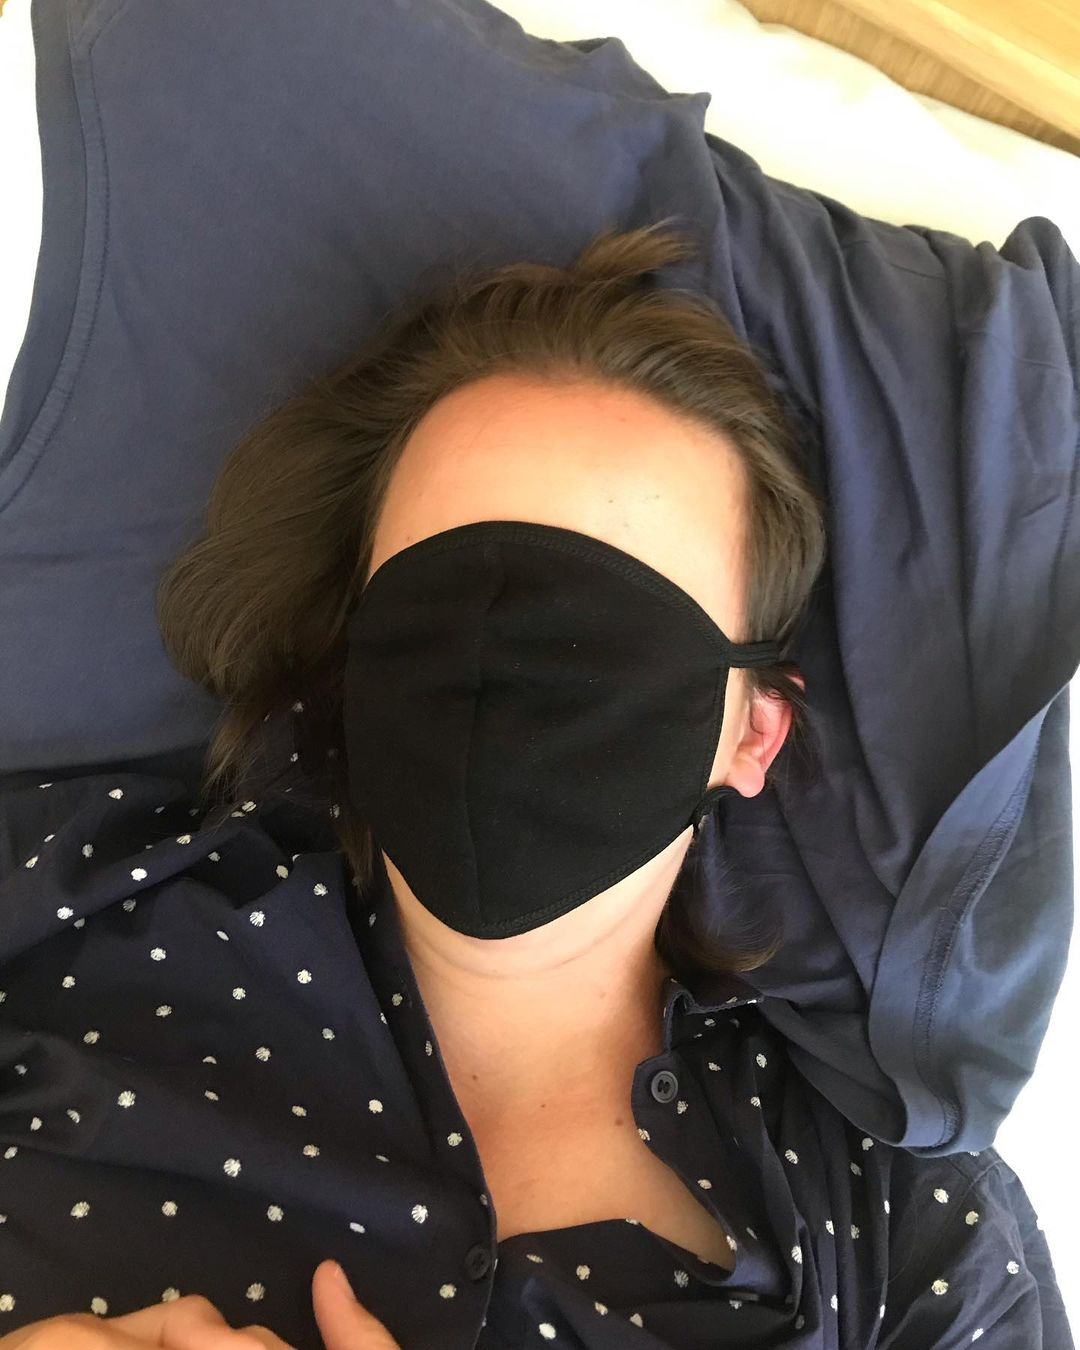 a figure laying on a navy blue pillow, over their face is a black face mask that, instead of covering the nose and mouth, also coviers their face, leaving thier forehead exposed. Their dark hair and dotted shirt lay crumpled on the pillow